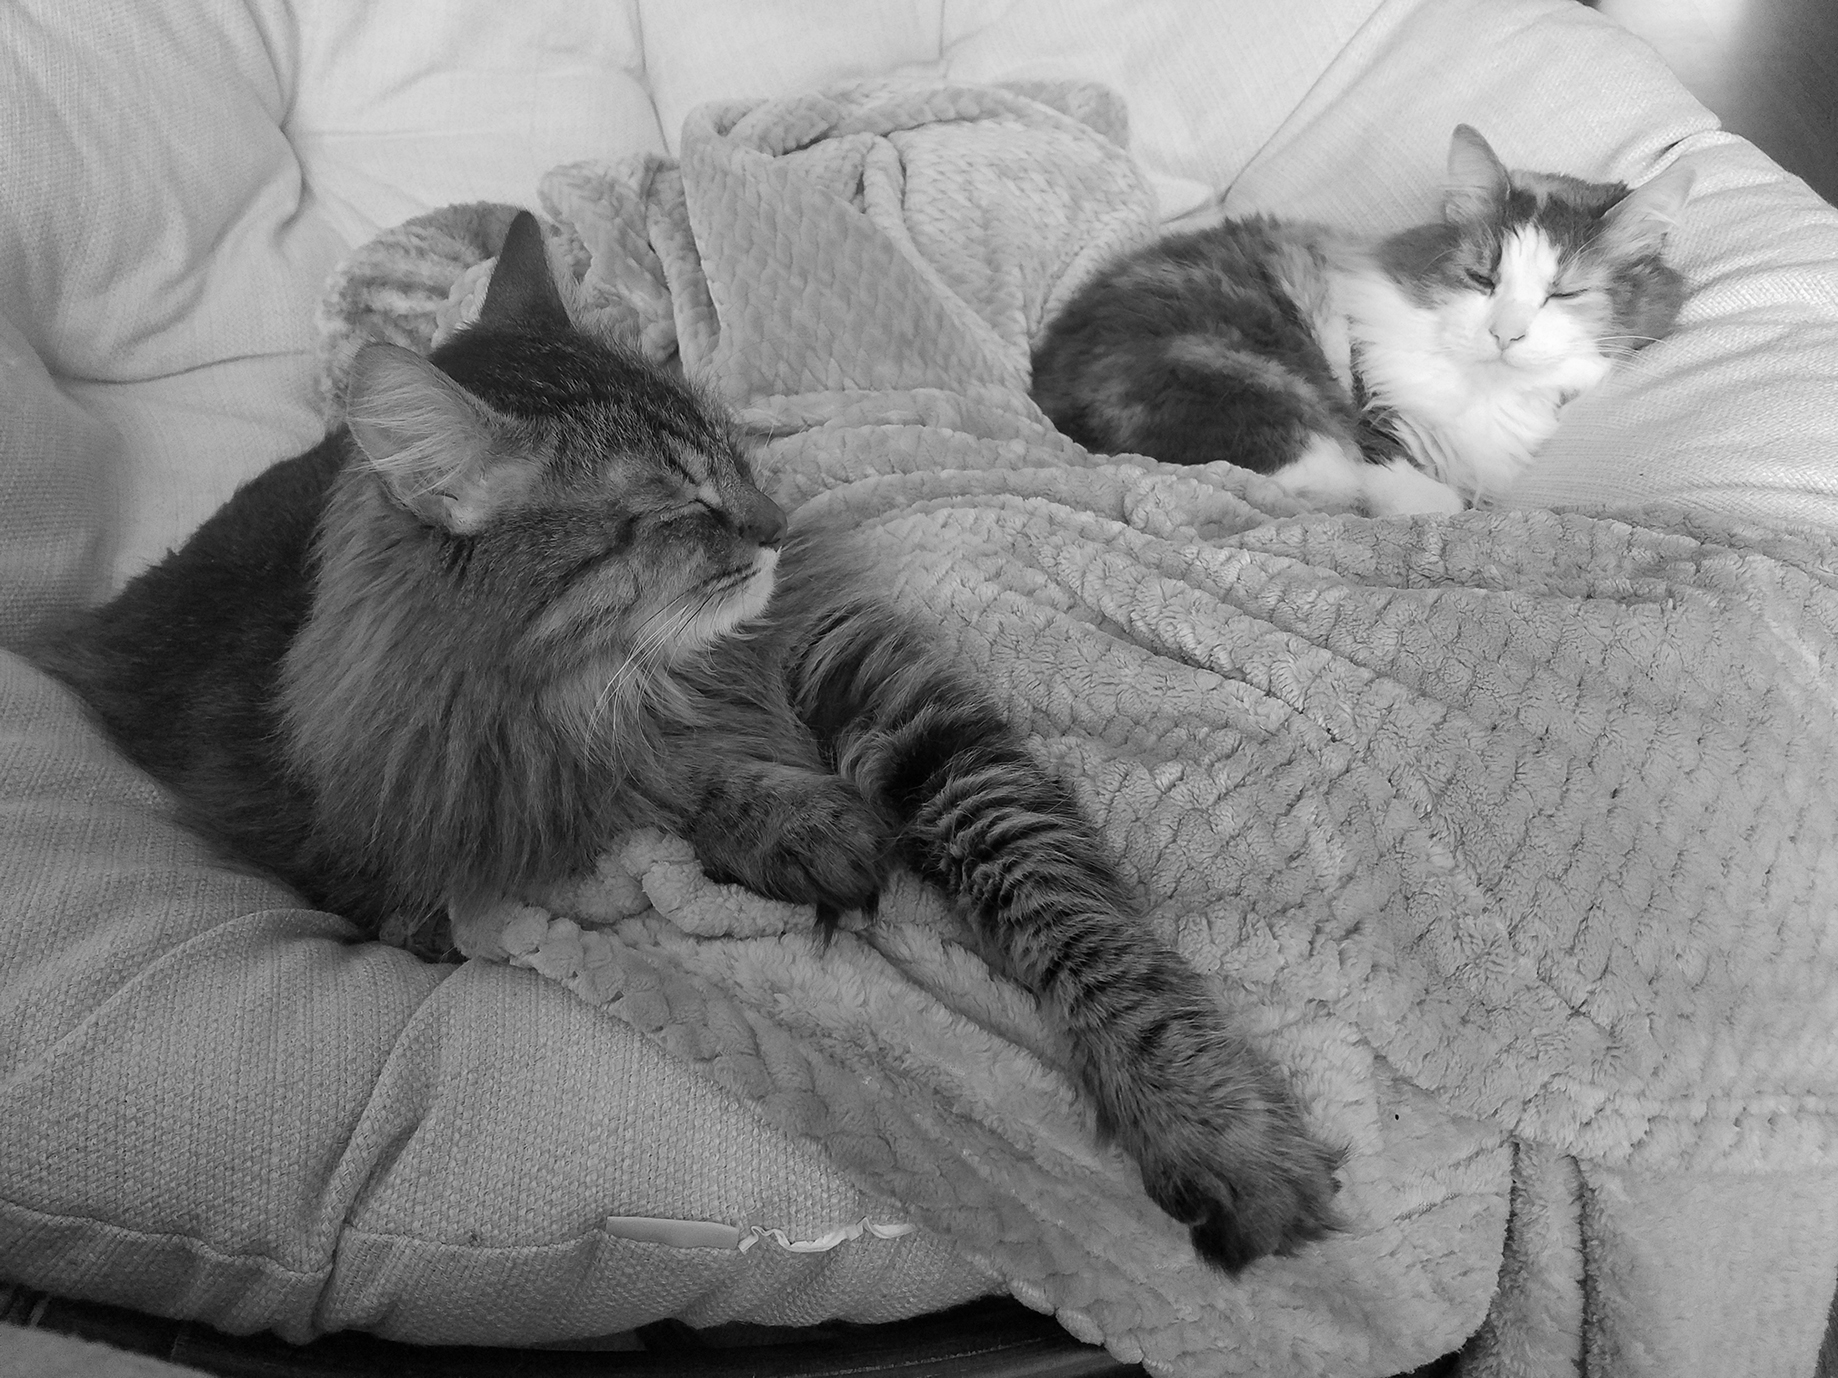 CATS - TOGETHER.jpg